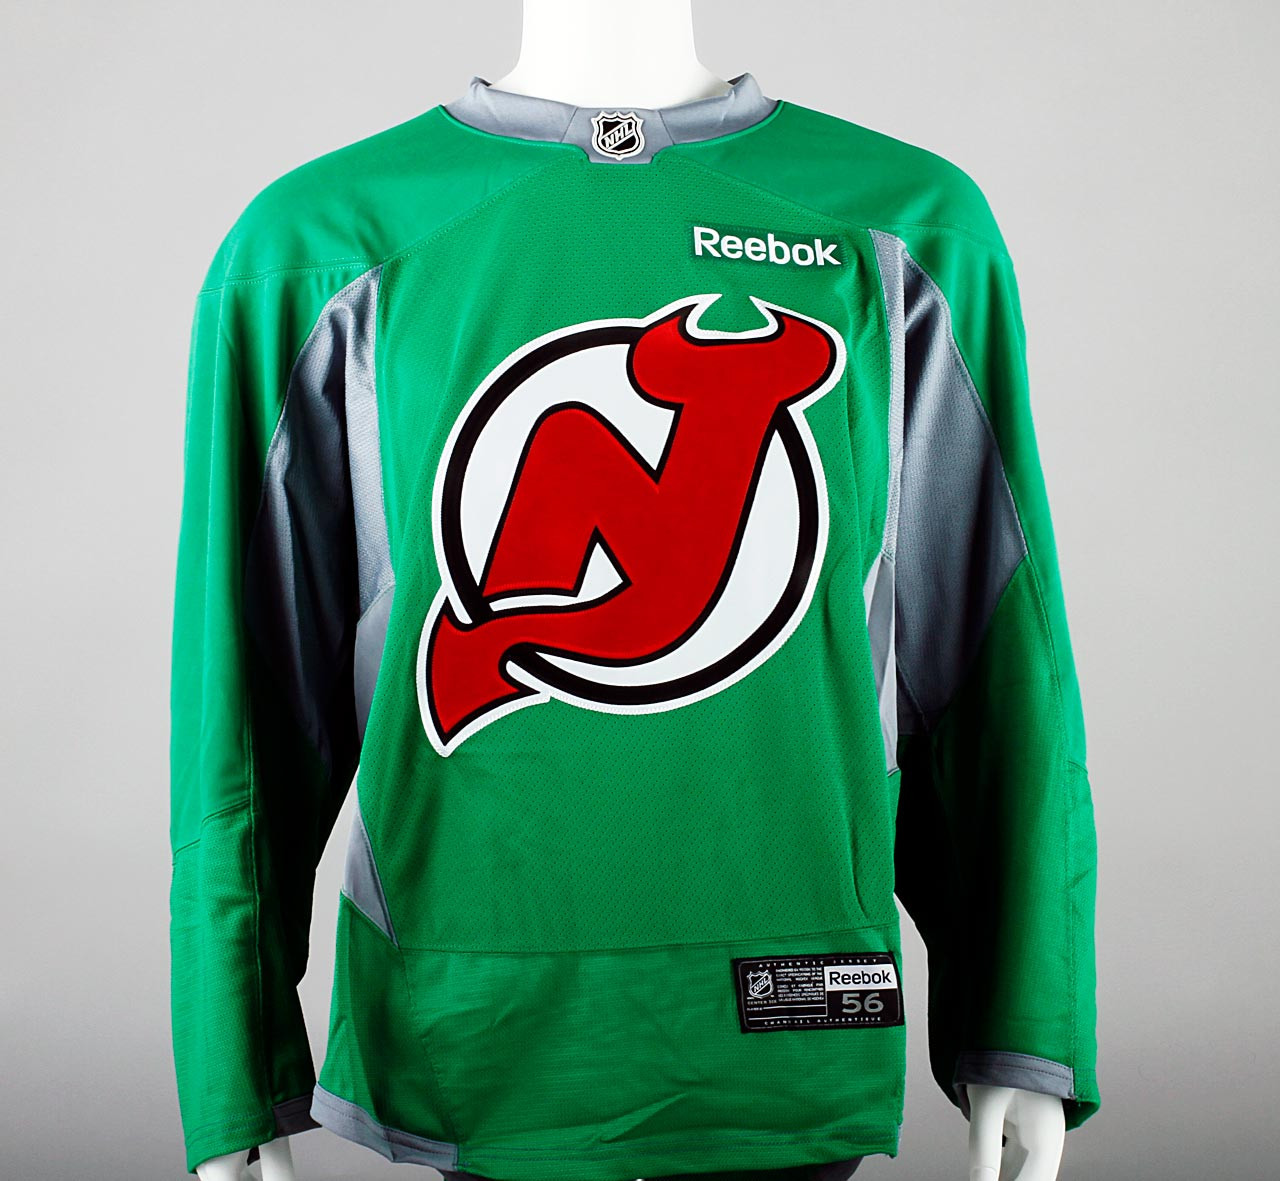 new concept 0c879 c09a1 Practice Jersey - New Jersey Devils - Green Reebok Size 56 #3